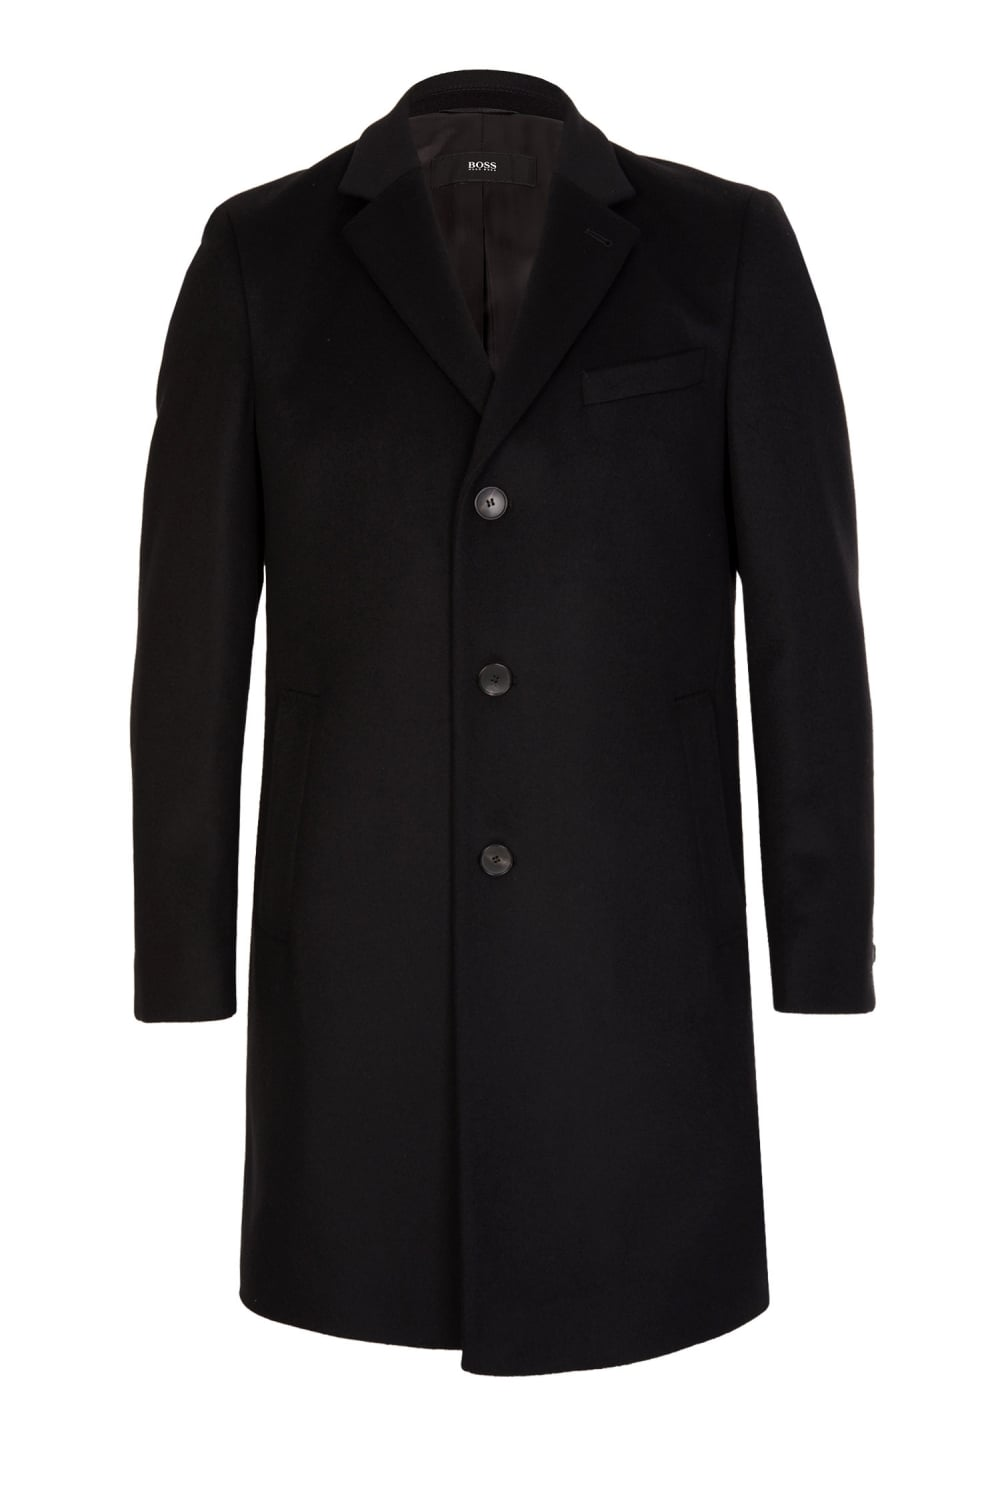 5e1b58ad6bd Hugo Boss NYE1 Coat Black